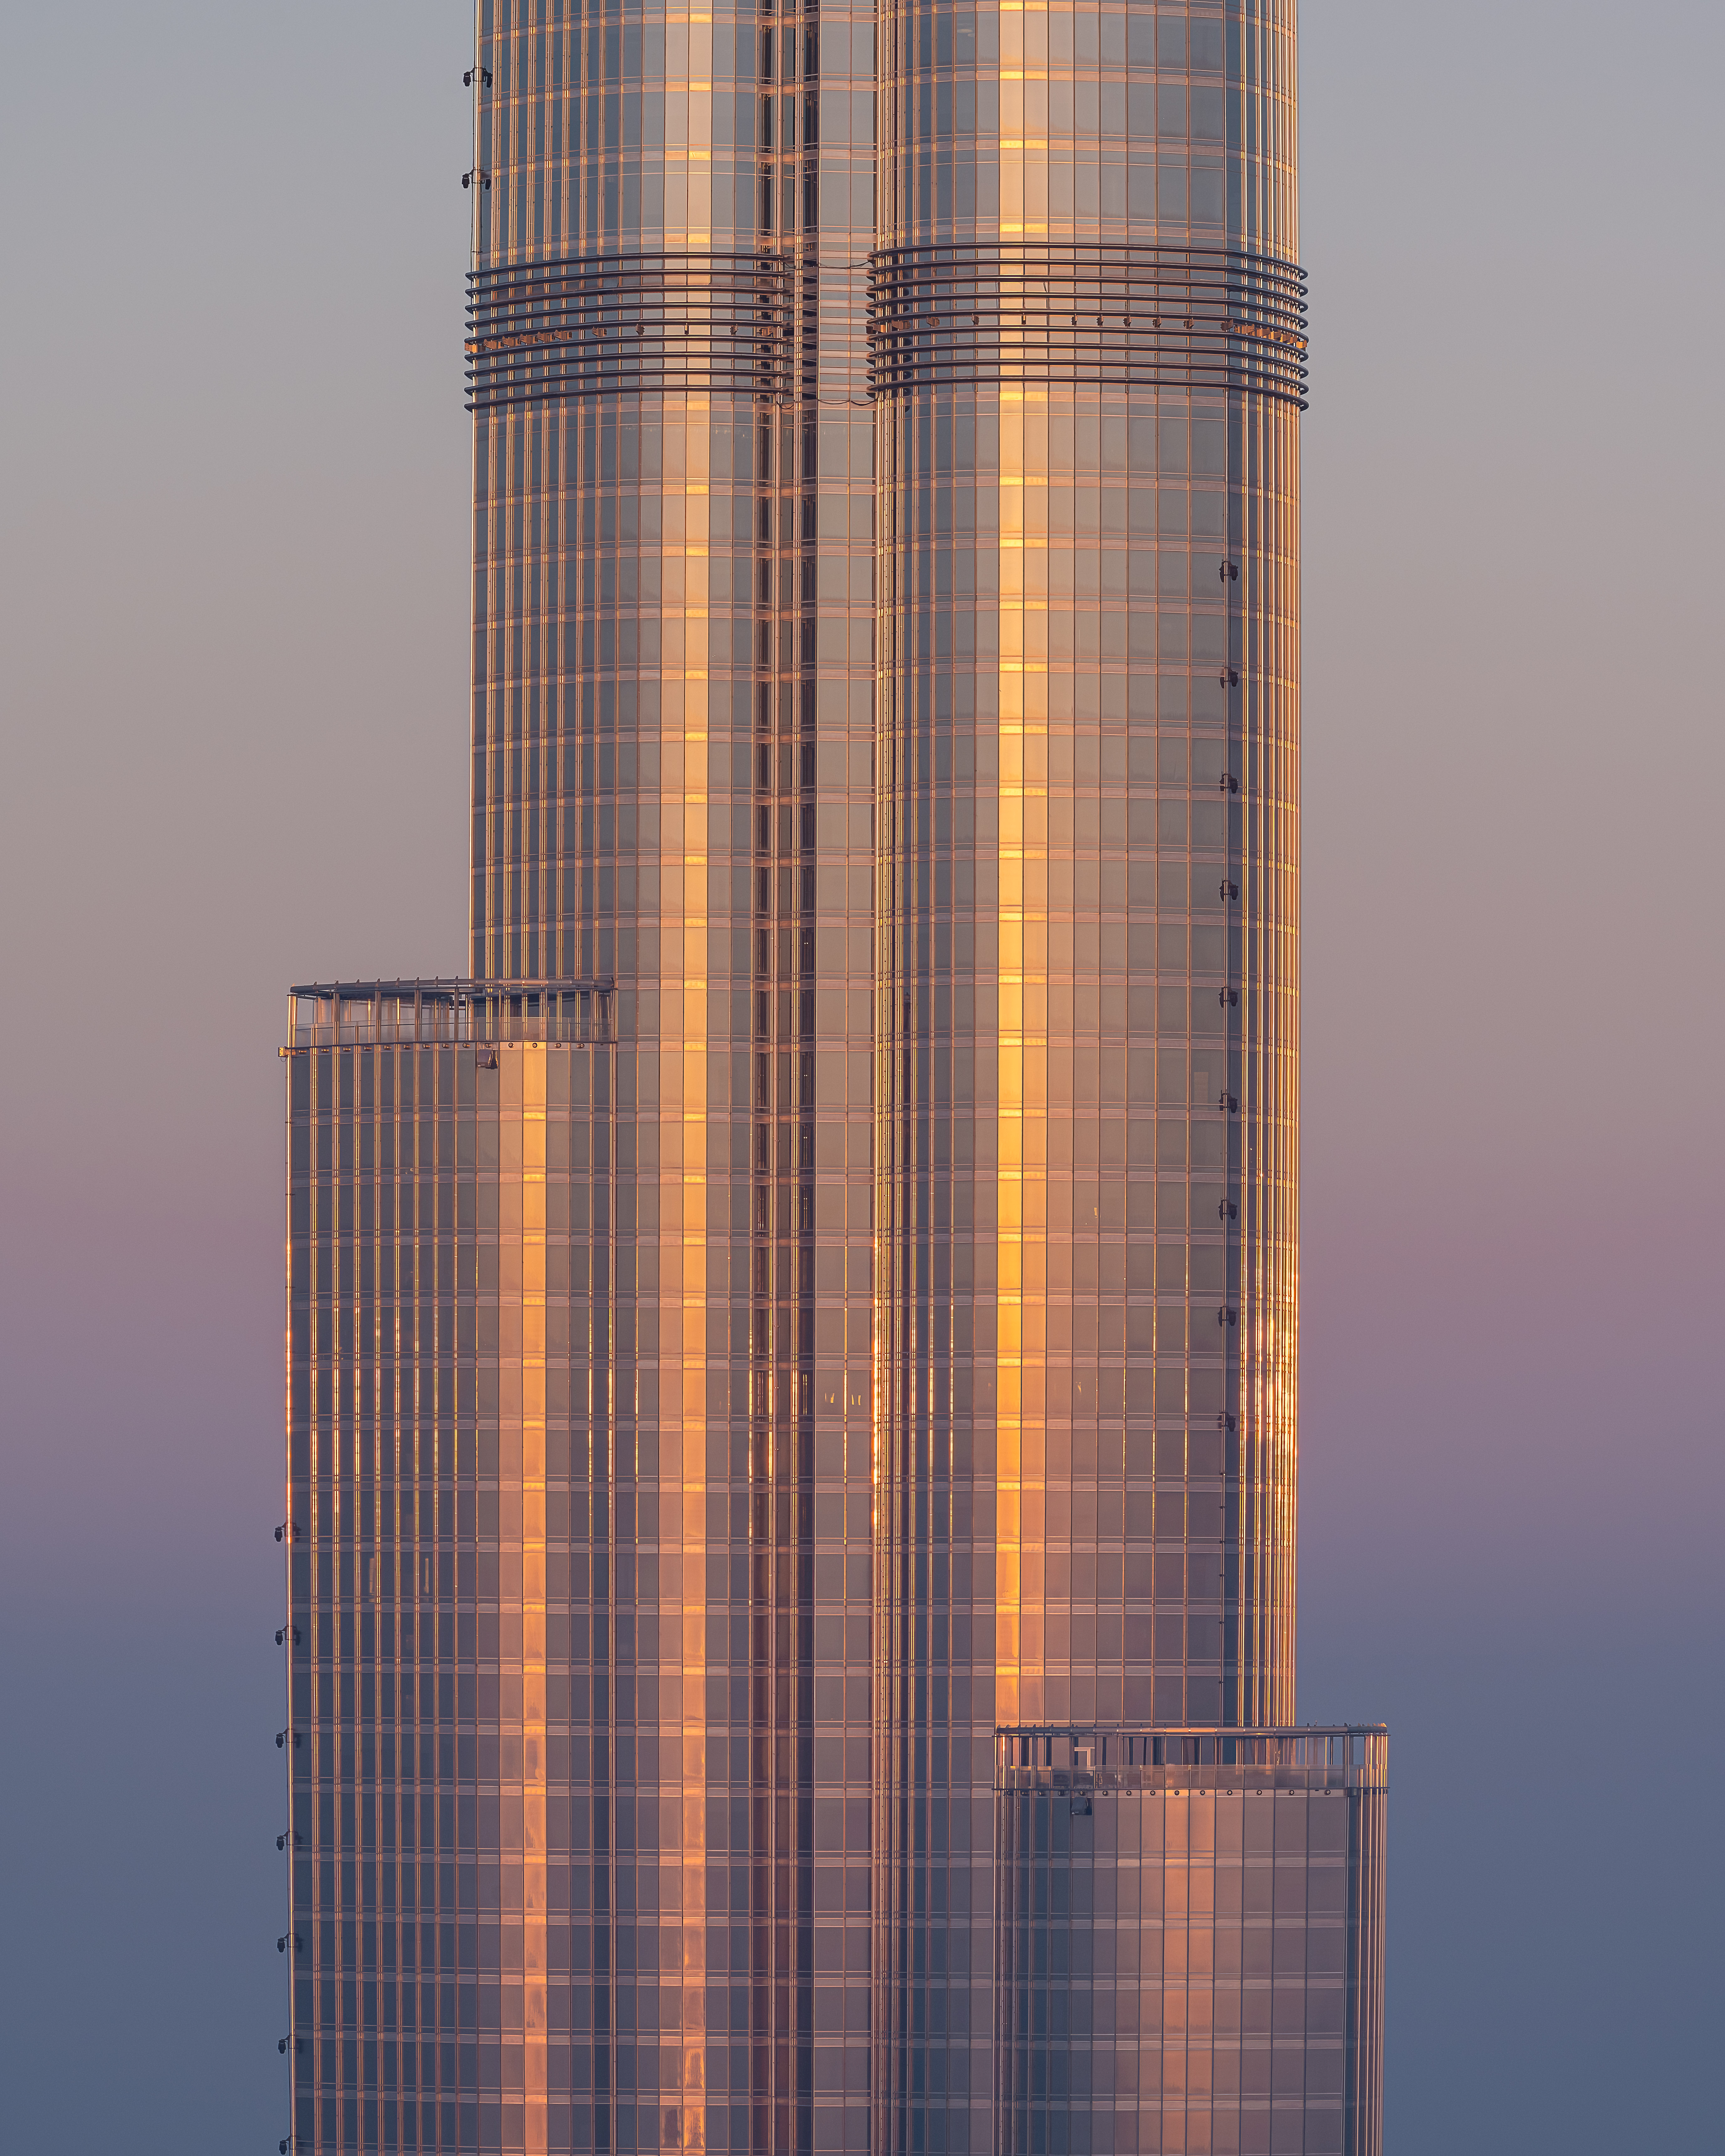 Morning light on the face of the World's tallest building